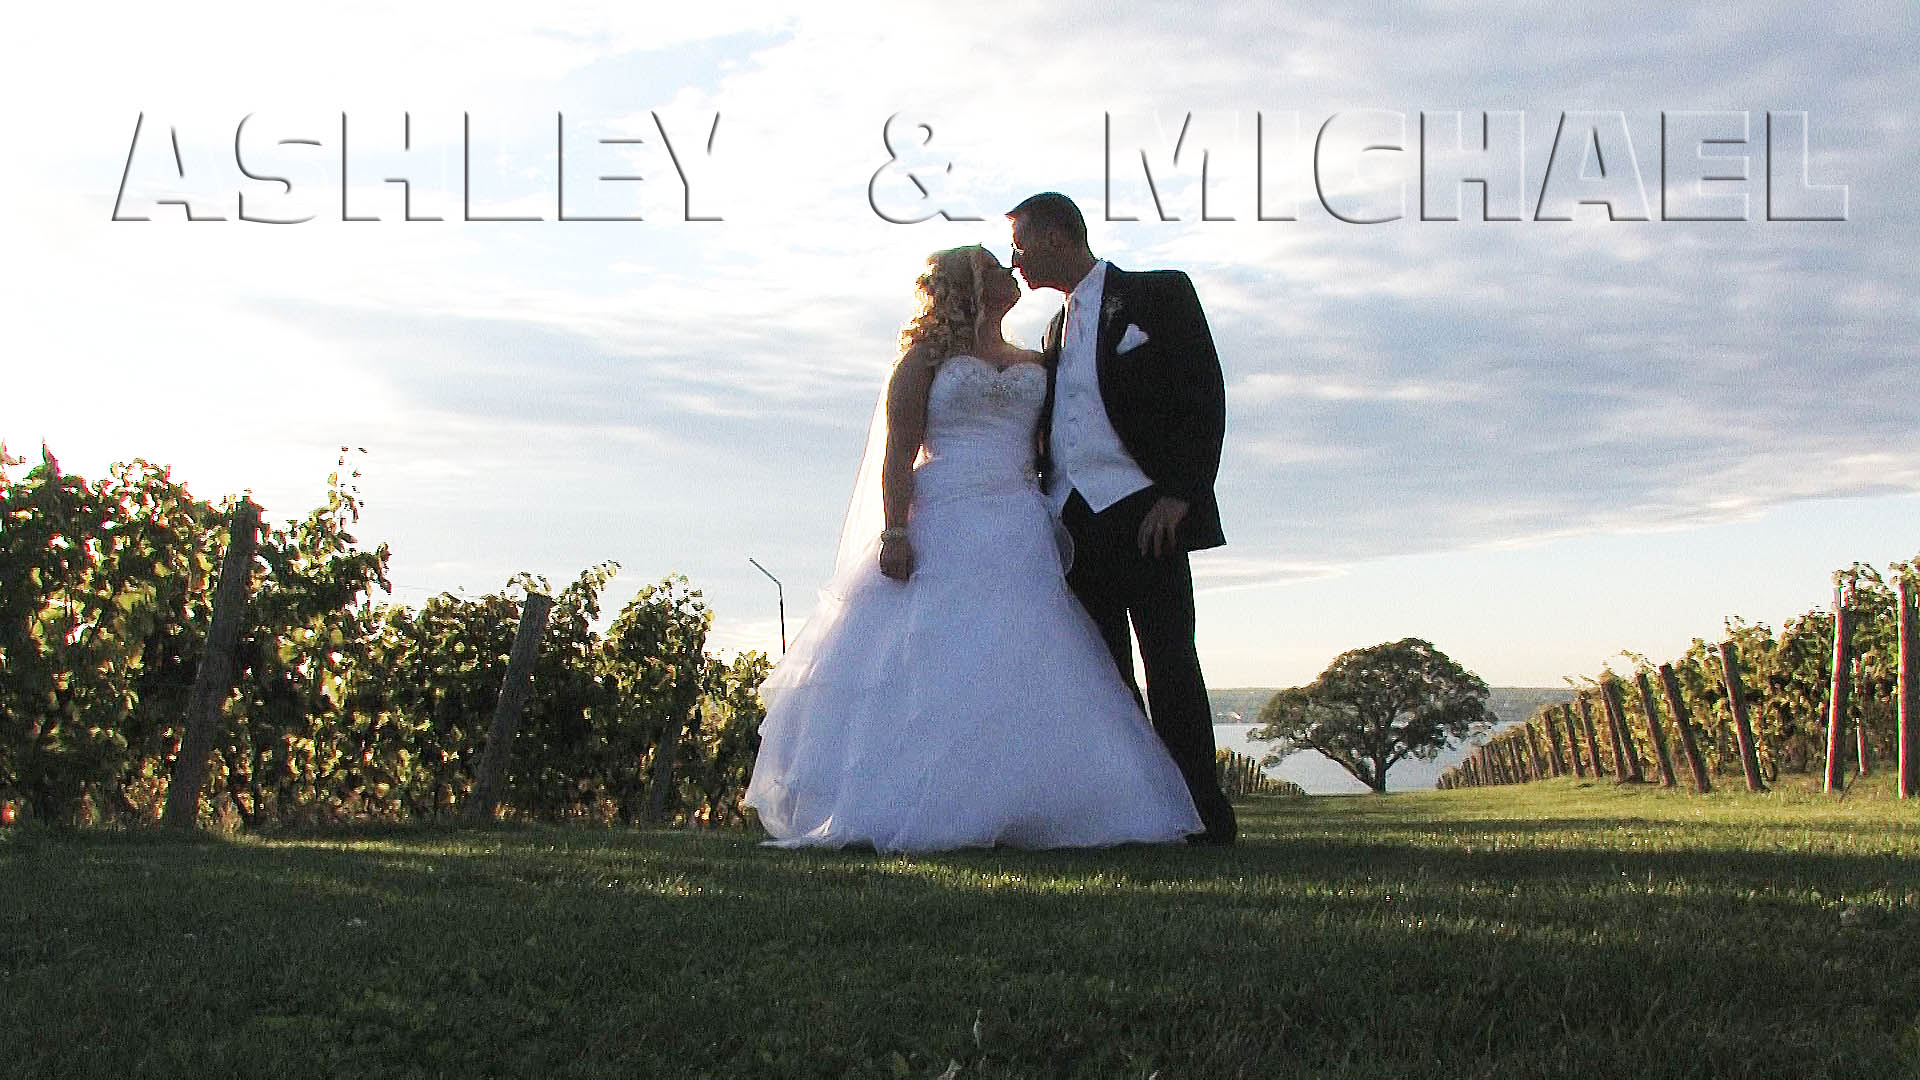 Michael & Ashley – Finger Lakes Wedding Video